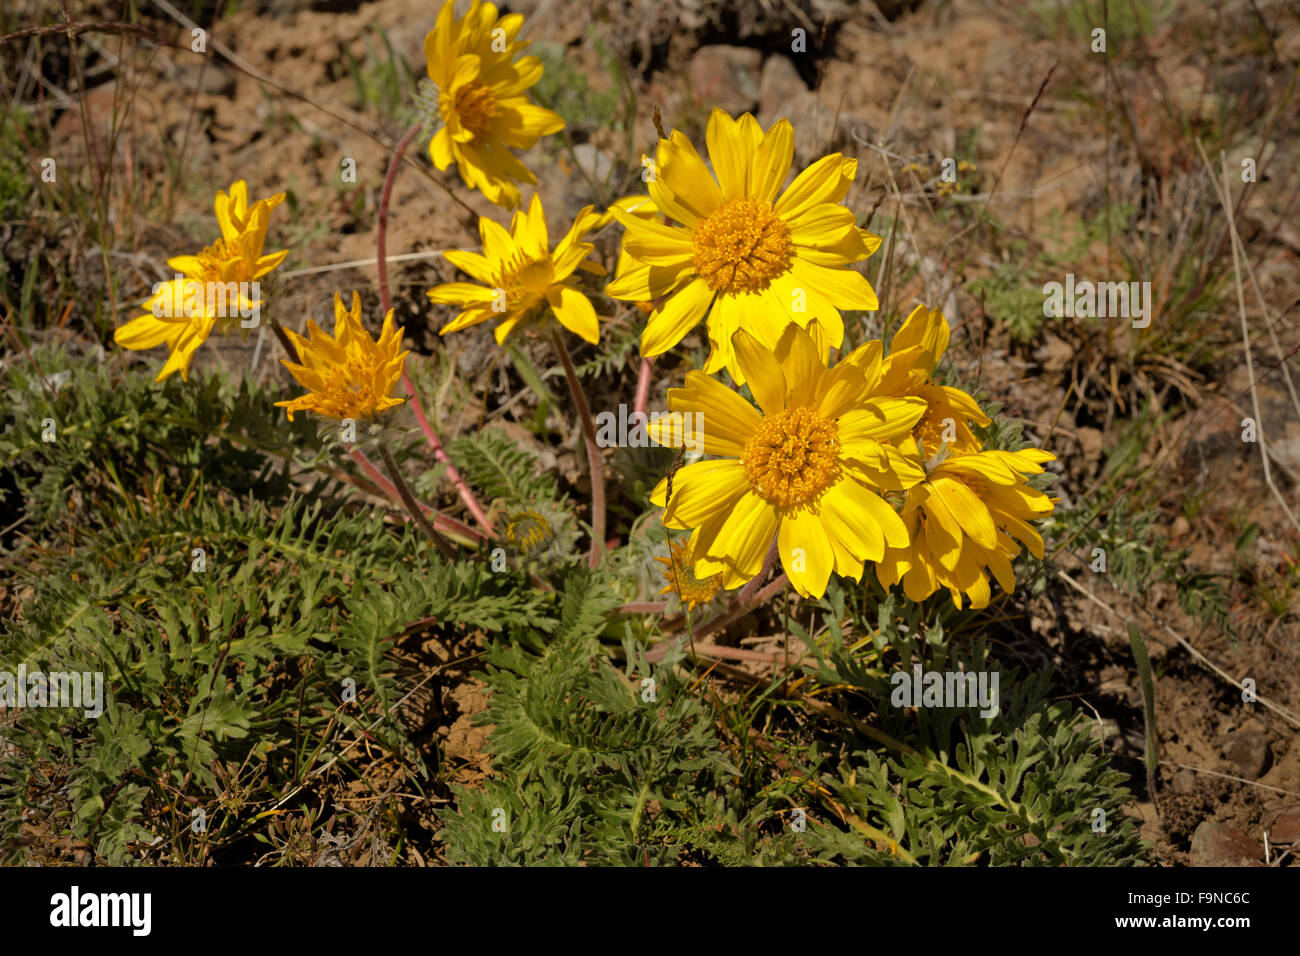 WA12385-00...WASHINGTON - Oregon sunshine blooming in the shrub-steppe ecosystem of the Beezley Hills north of Quincy. - Stock Image